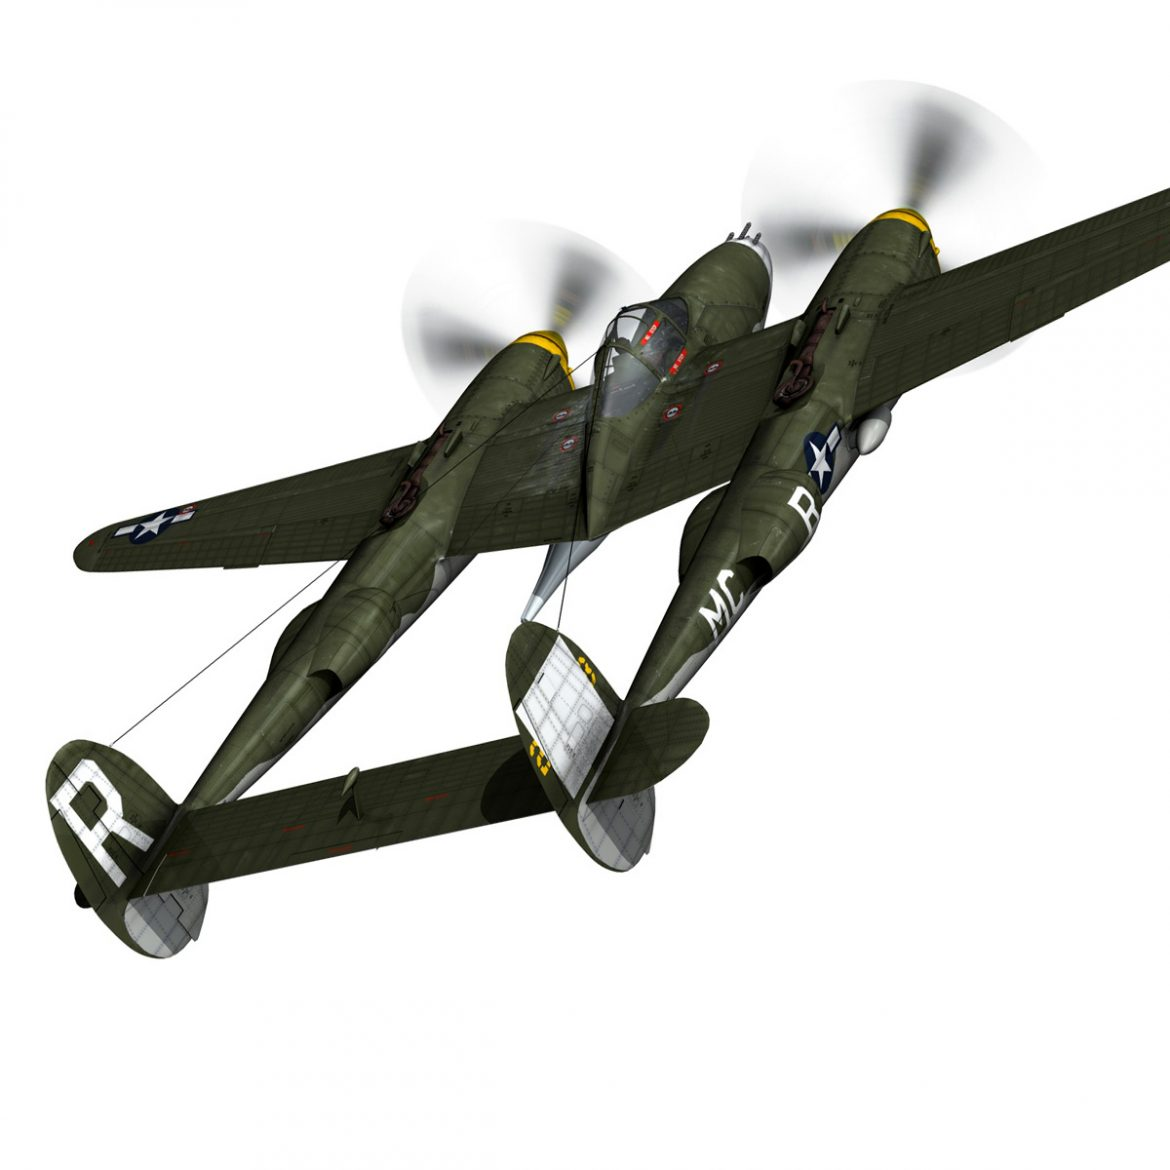 lockheed p-38 lightning – gentle annie 3d model fbx c4d lwo obj 300084